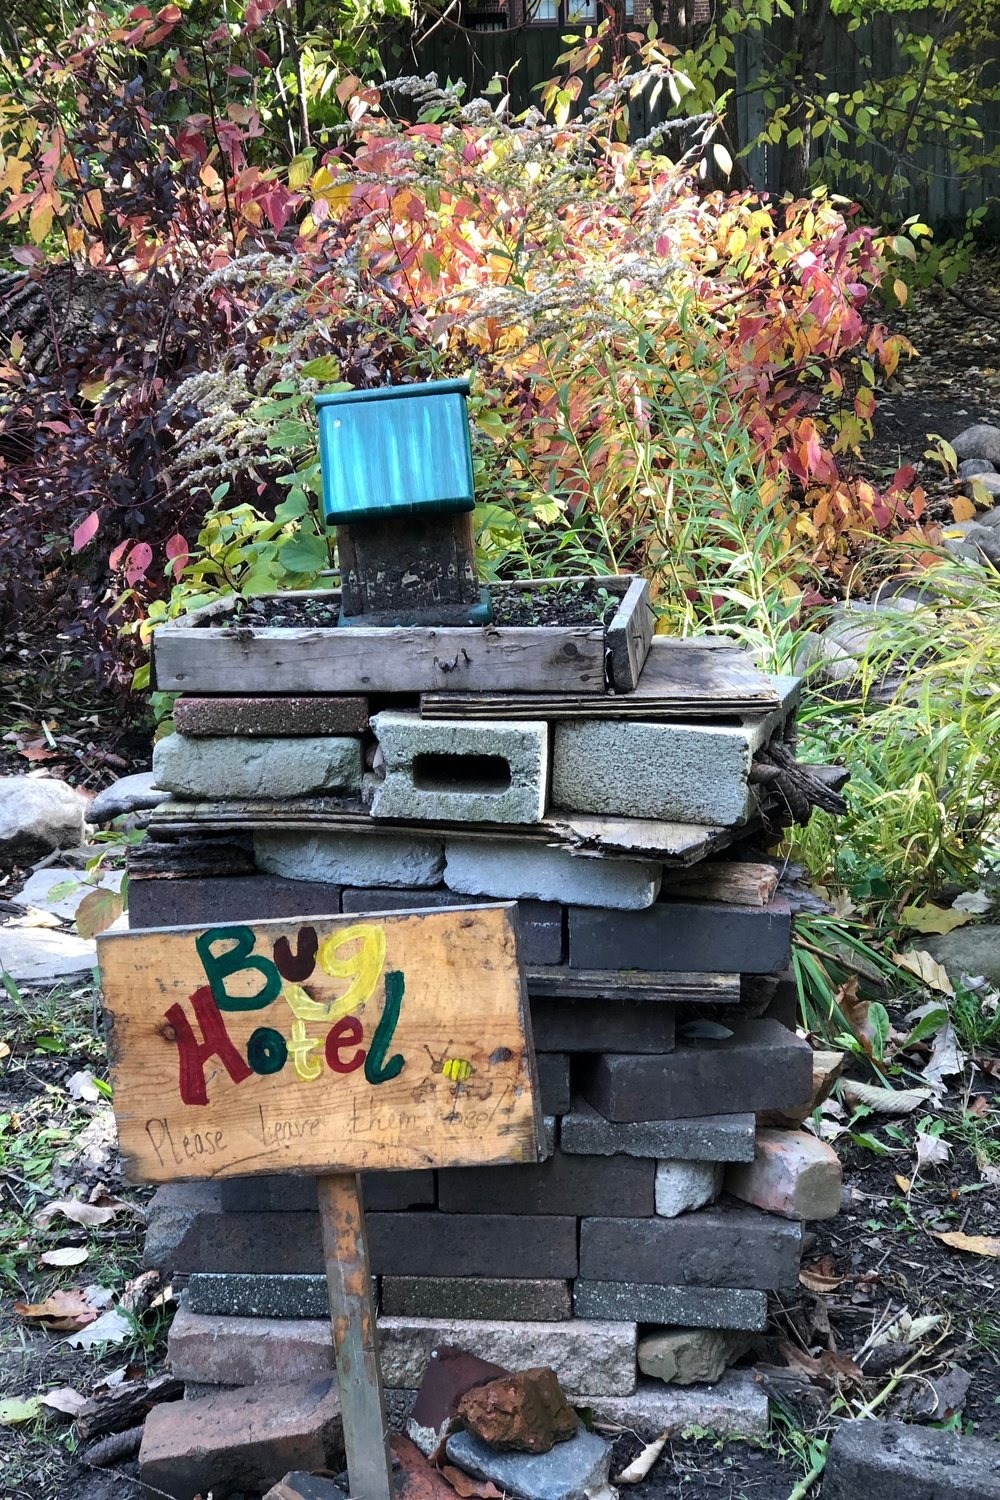 When I taught the creative writing club last fall, we found Detroit Waldorf's Bug Hotel hiking outside the school.